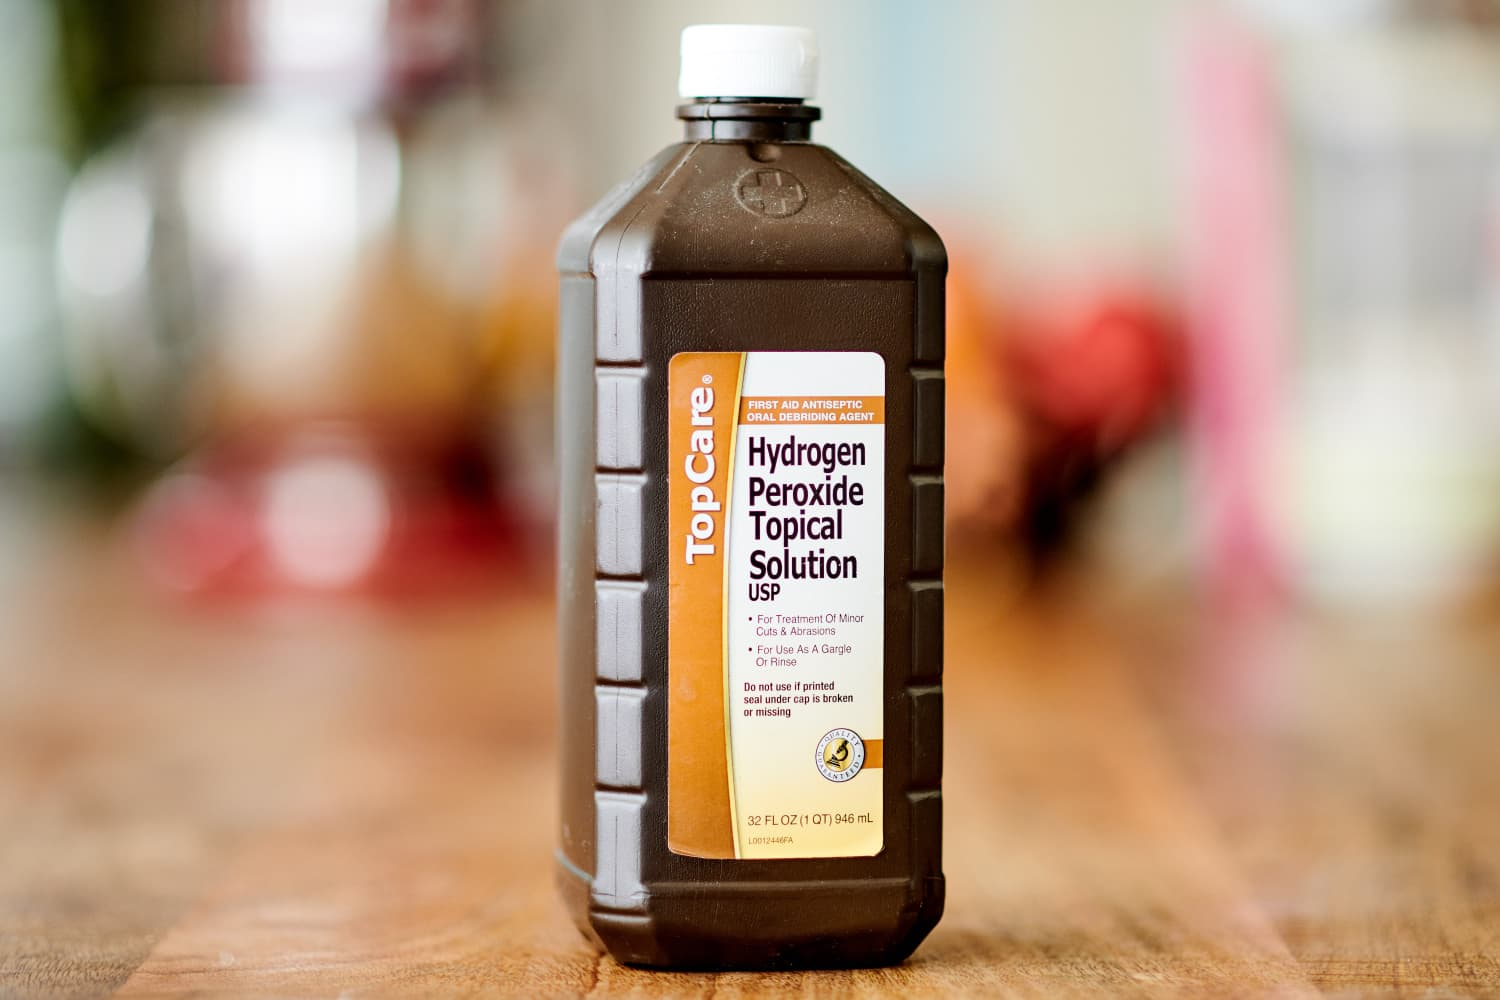 Why You Should Take Hydrogen Peroxide Out of Your First Aid Kit